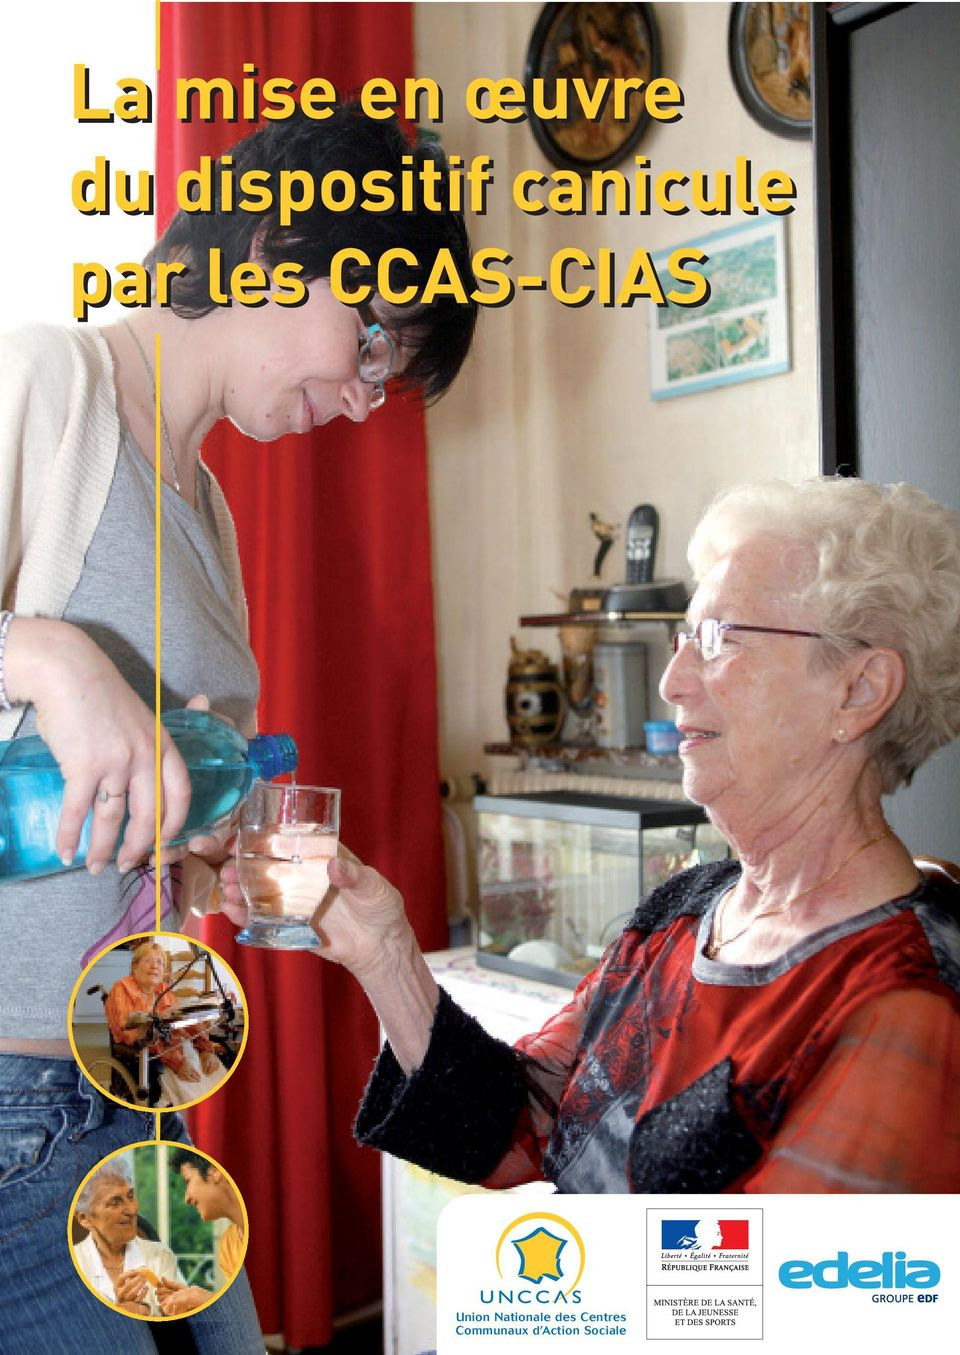 CCAS-CIAS Union Nationale